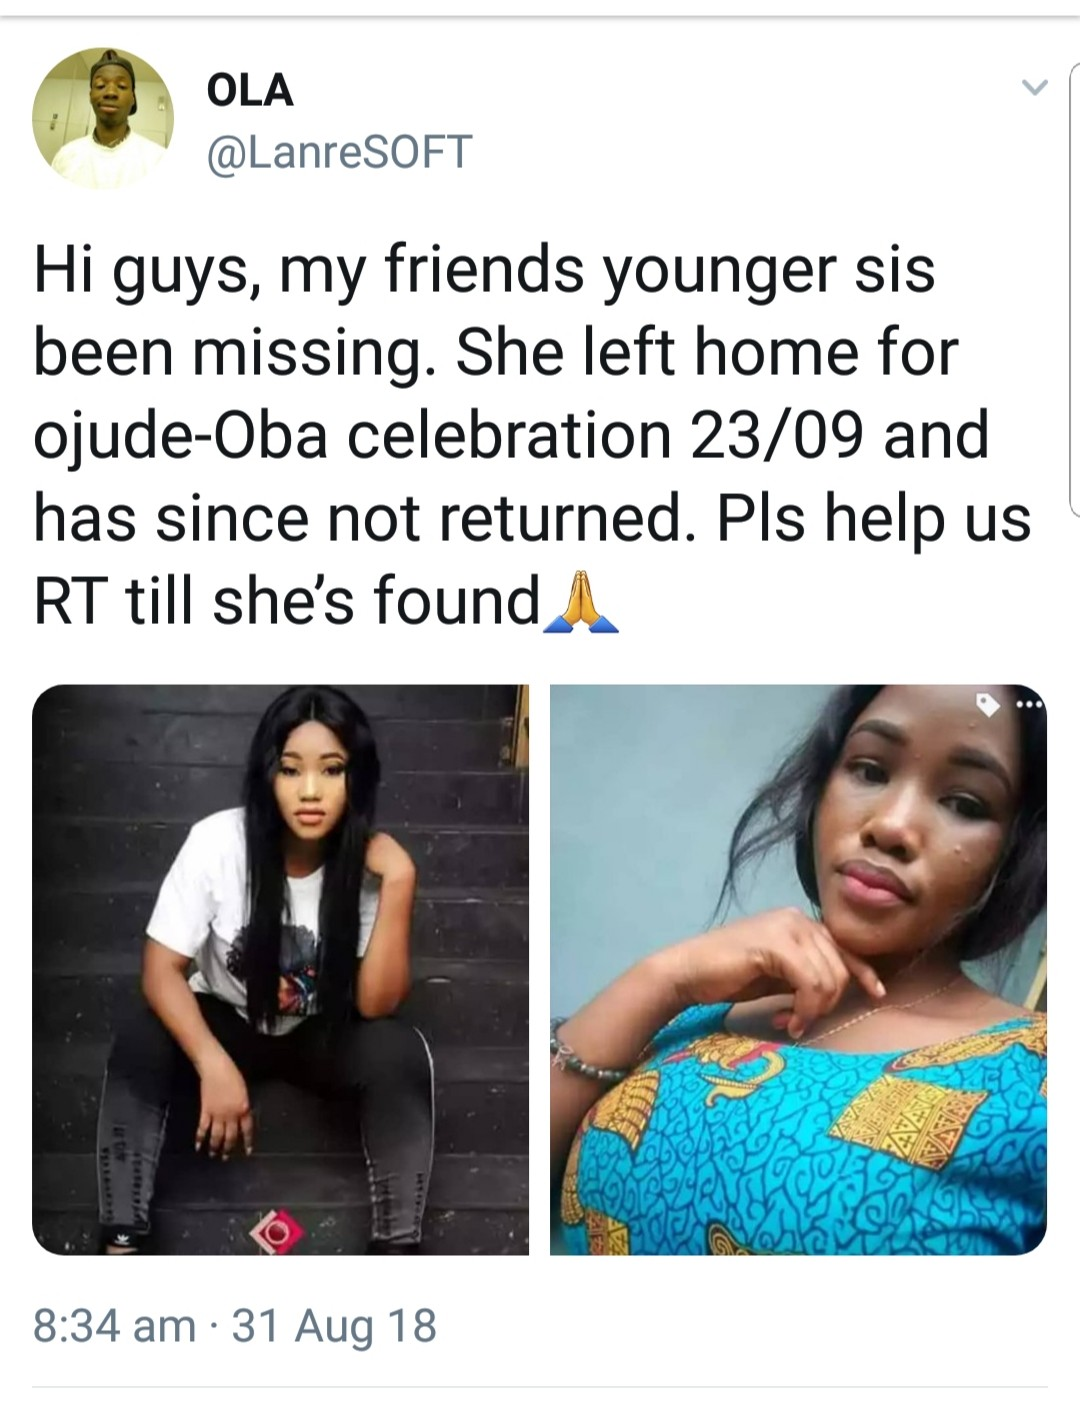 Photos: Young lady who left home for Ojude-Oba festival in Ogun state since August 23rd declared missing